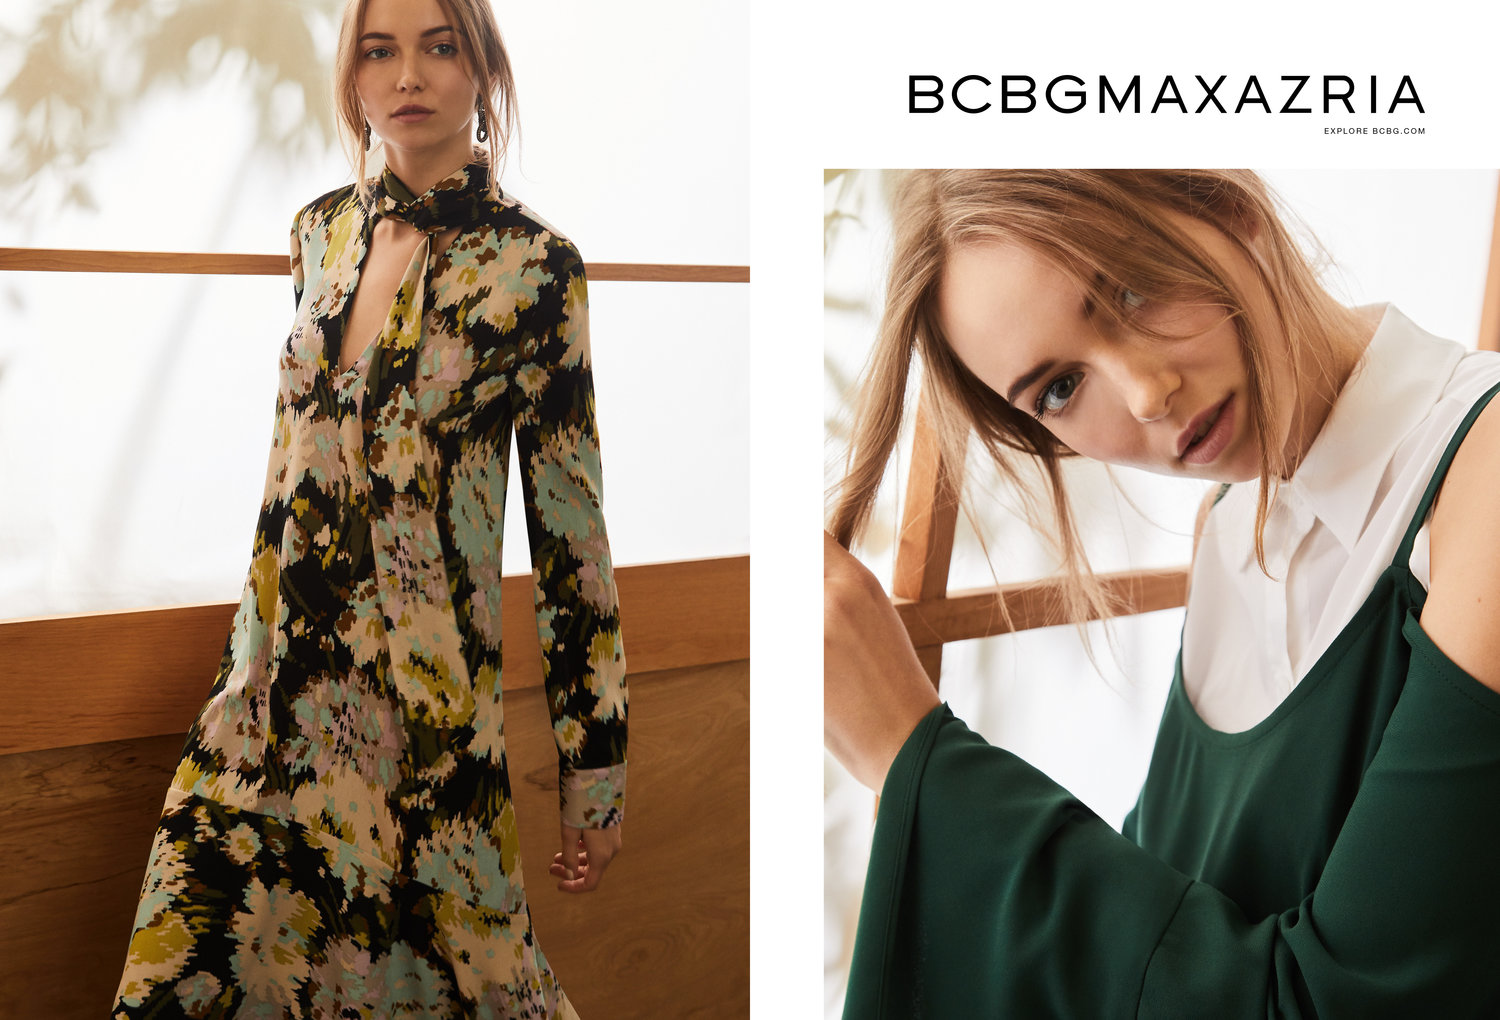 BCBG_AD_LAYOUTS_F1712.jpg